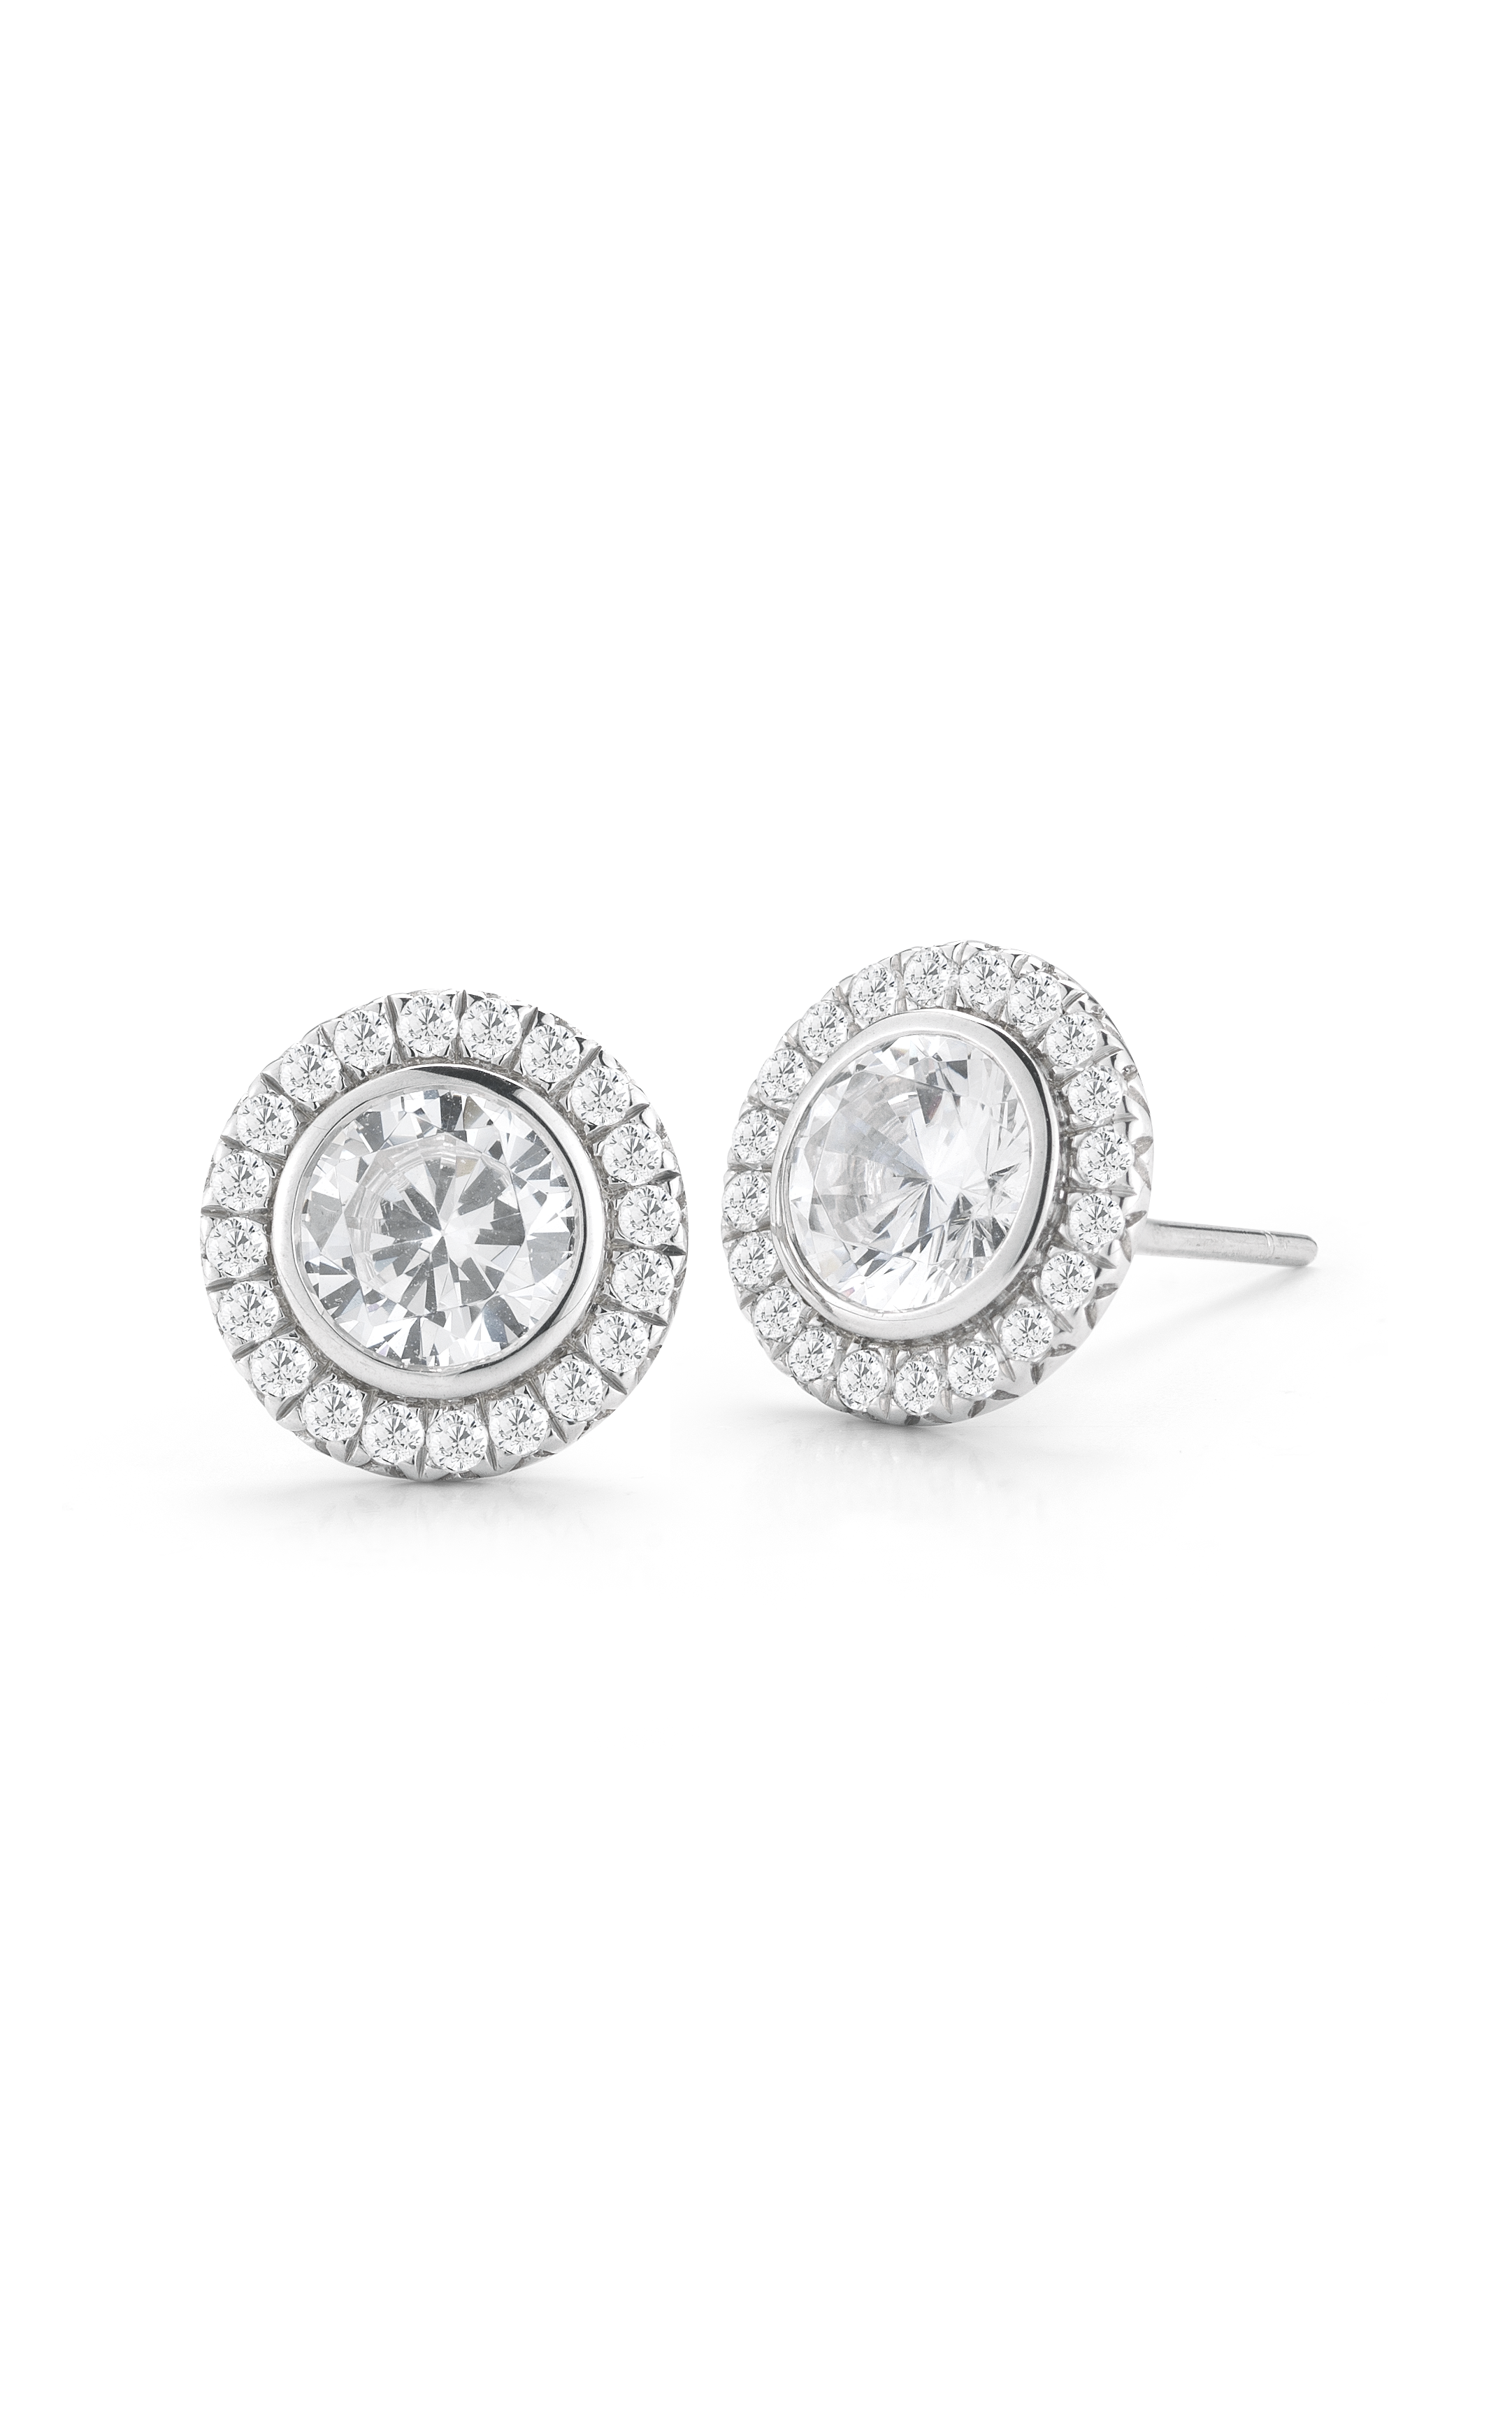 Beny Sofer Earrings Earring ED16-69B product image